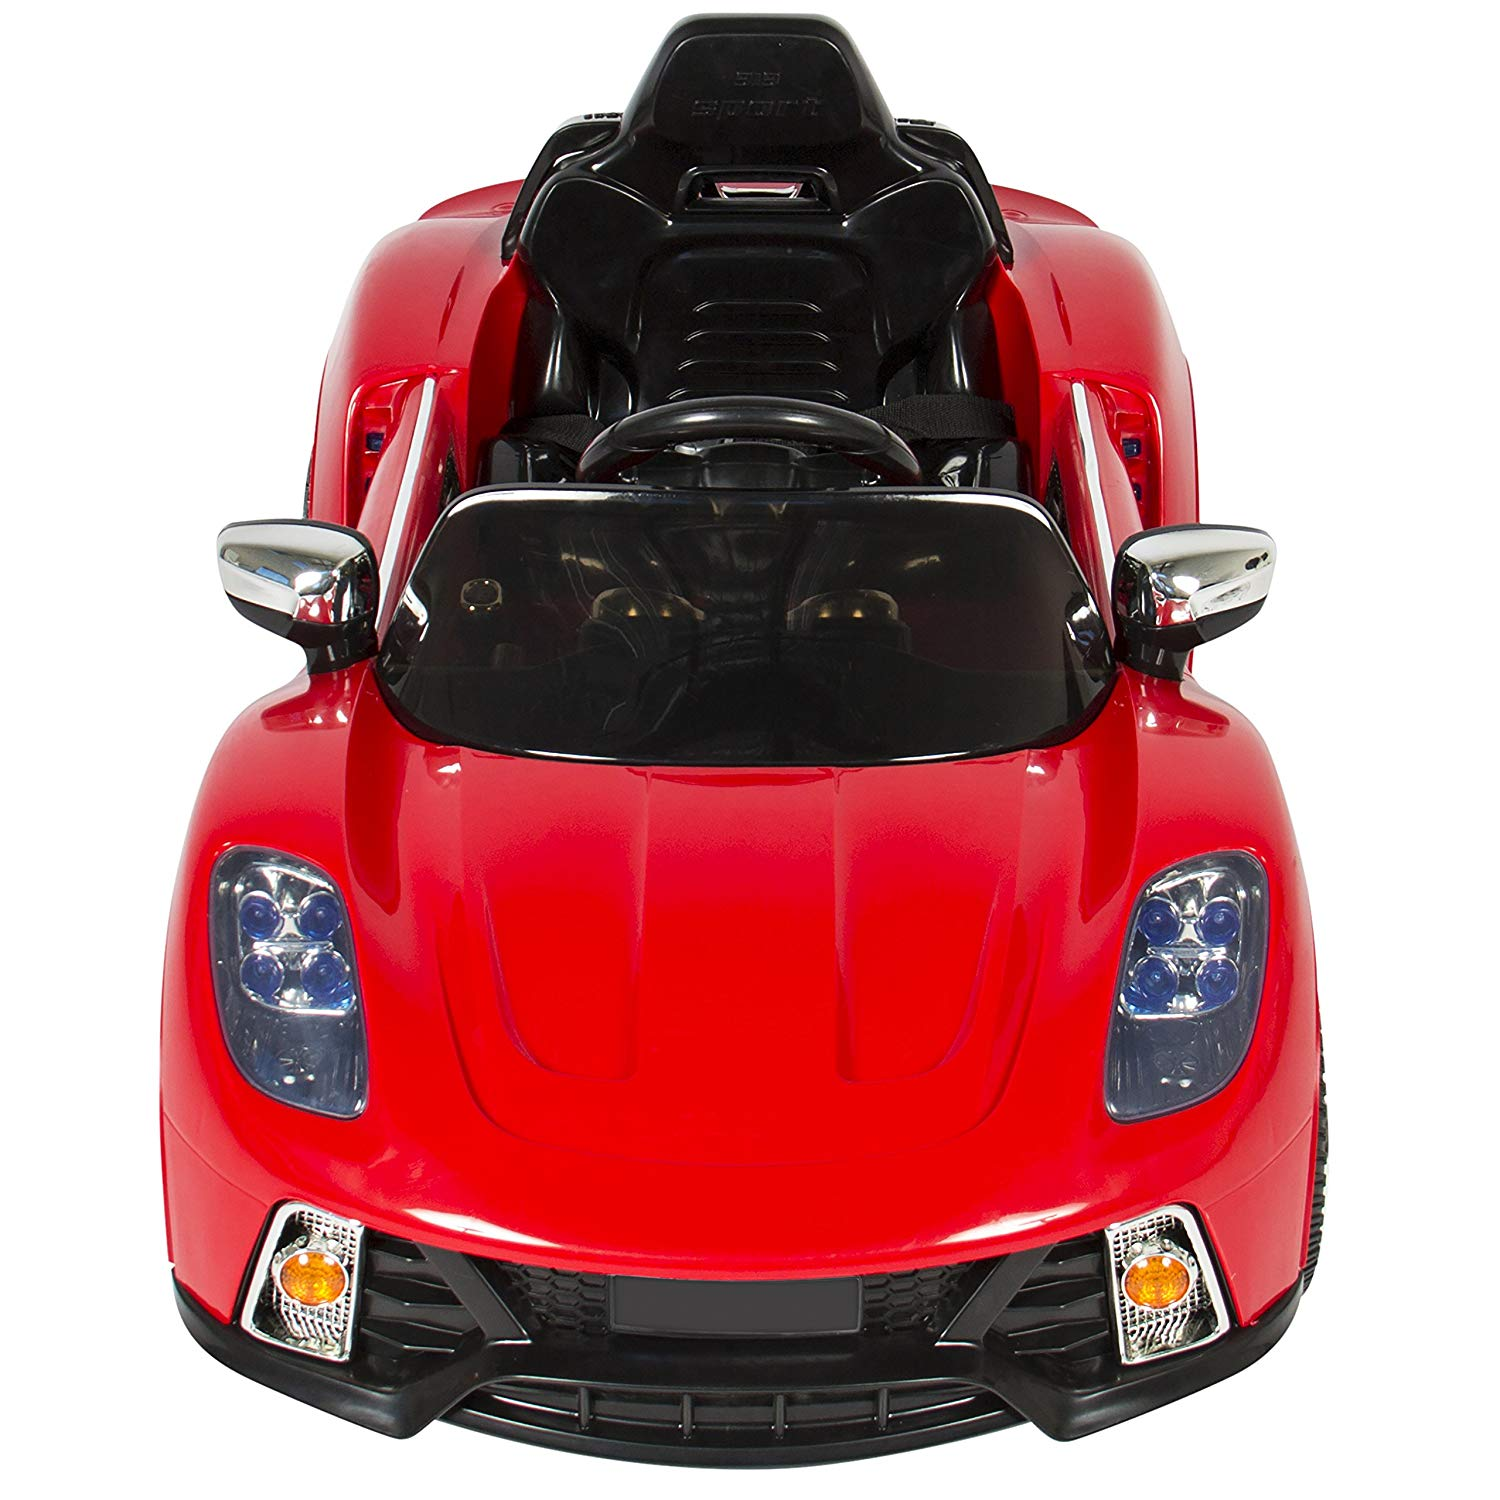 Battery Powered Cars for Kids Luxury Best Choice Products 12v Kids Battery Powered Remote